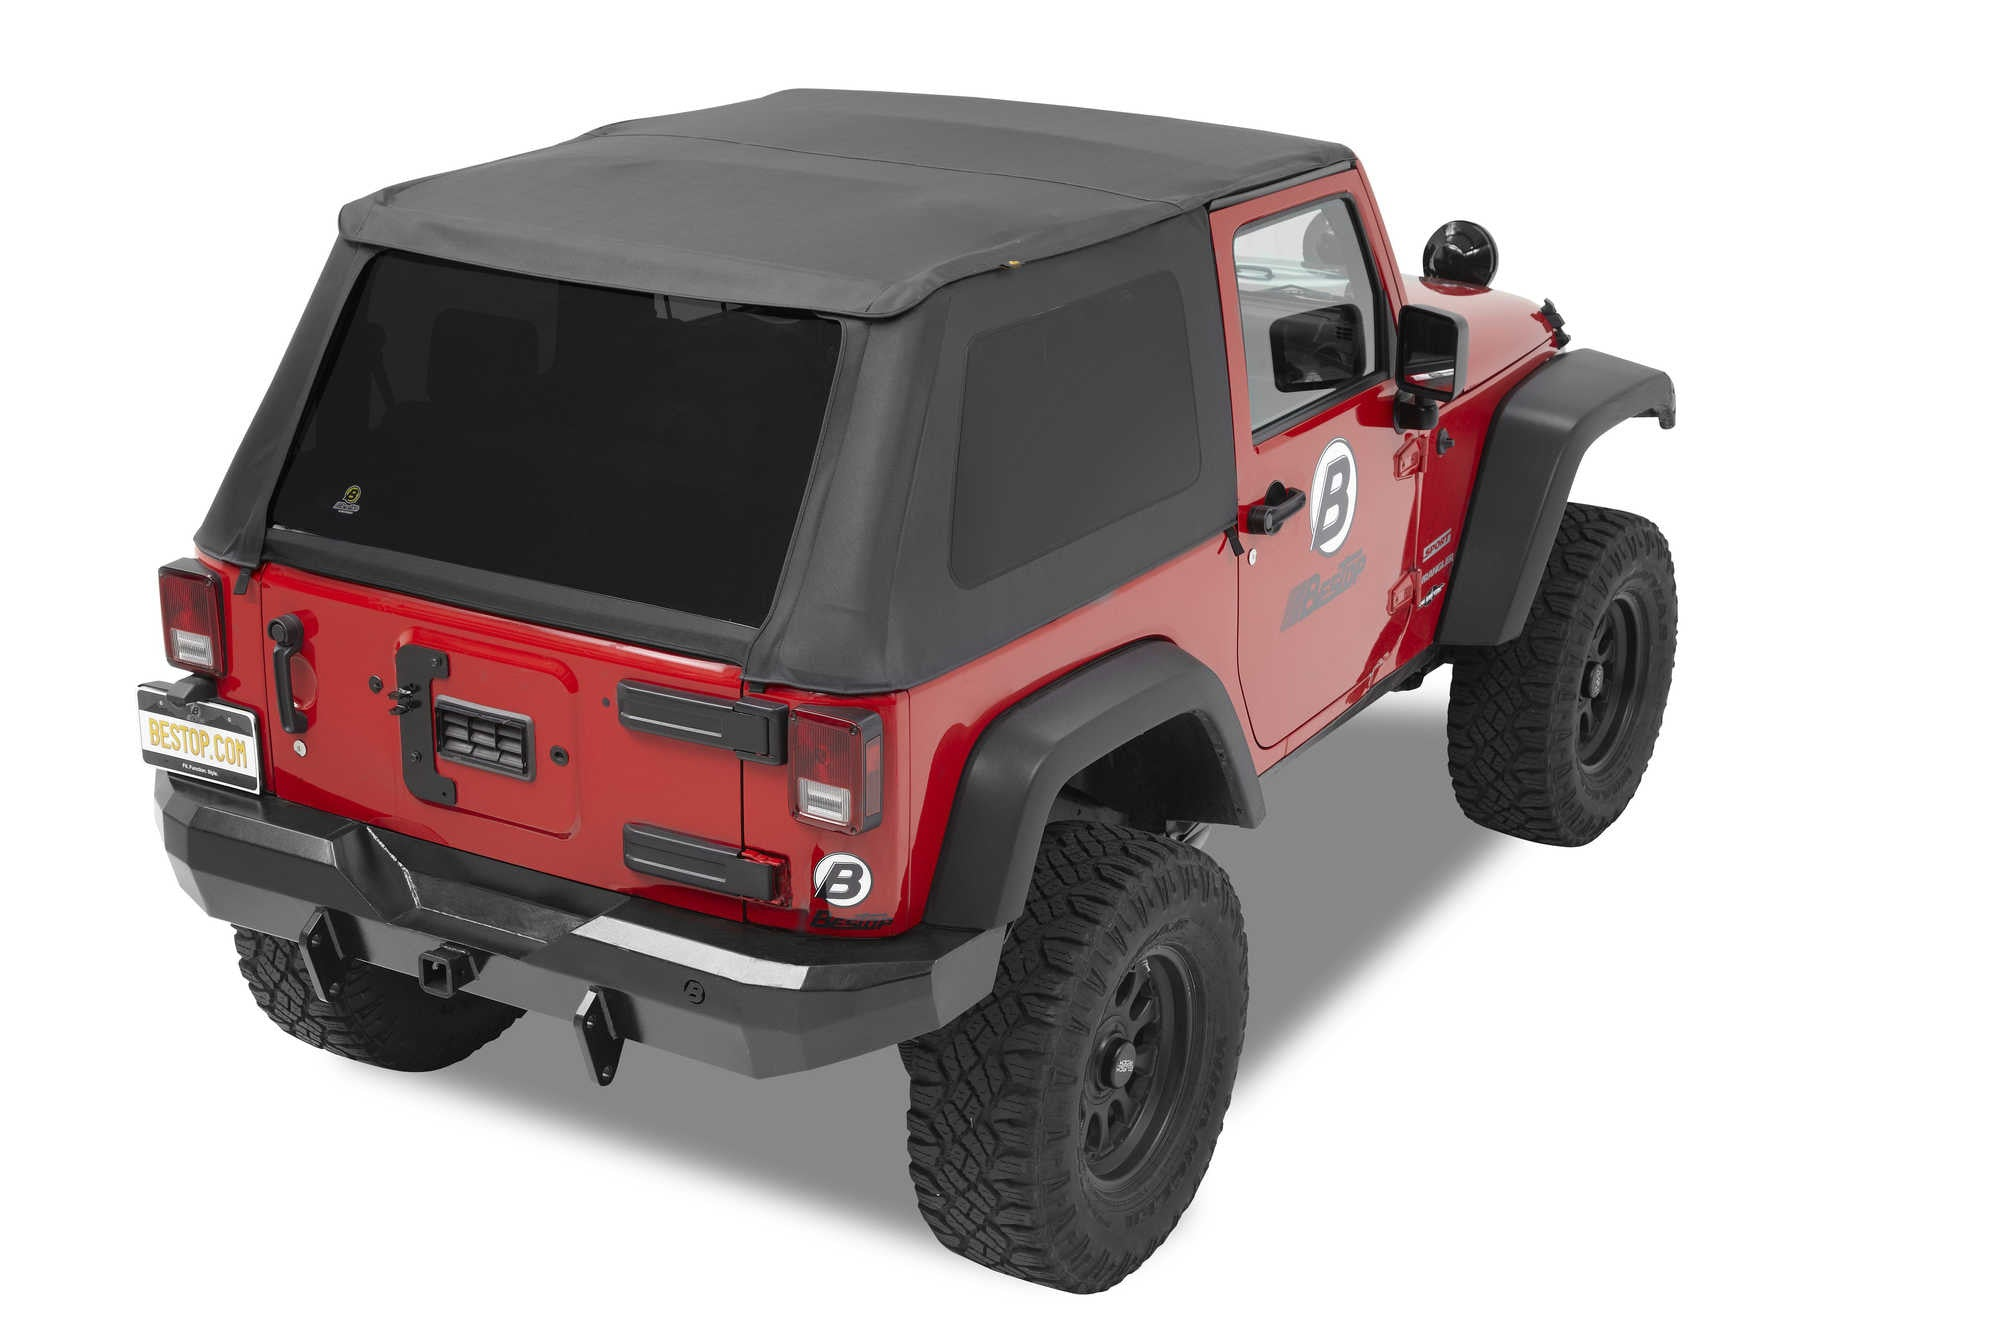 Bestop Trektop NX in Black Diamond for 07-16 Jeep Wrangler JK 2 Door ...  sc 1 st  Black Dog Offroad & Bestop Trektop NX in Black Diamond for 07-17 Jeep Wrangler JK 2 Door ...